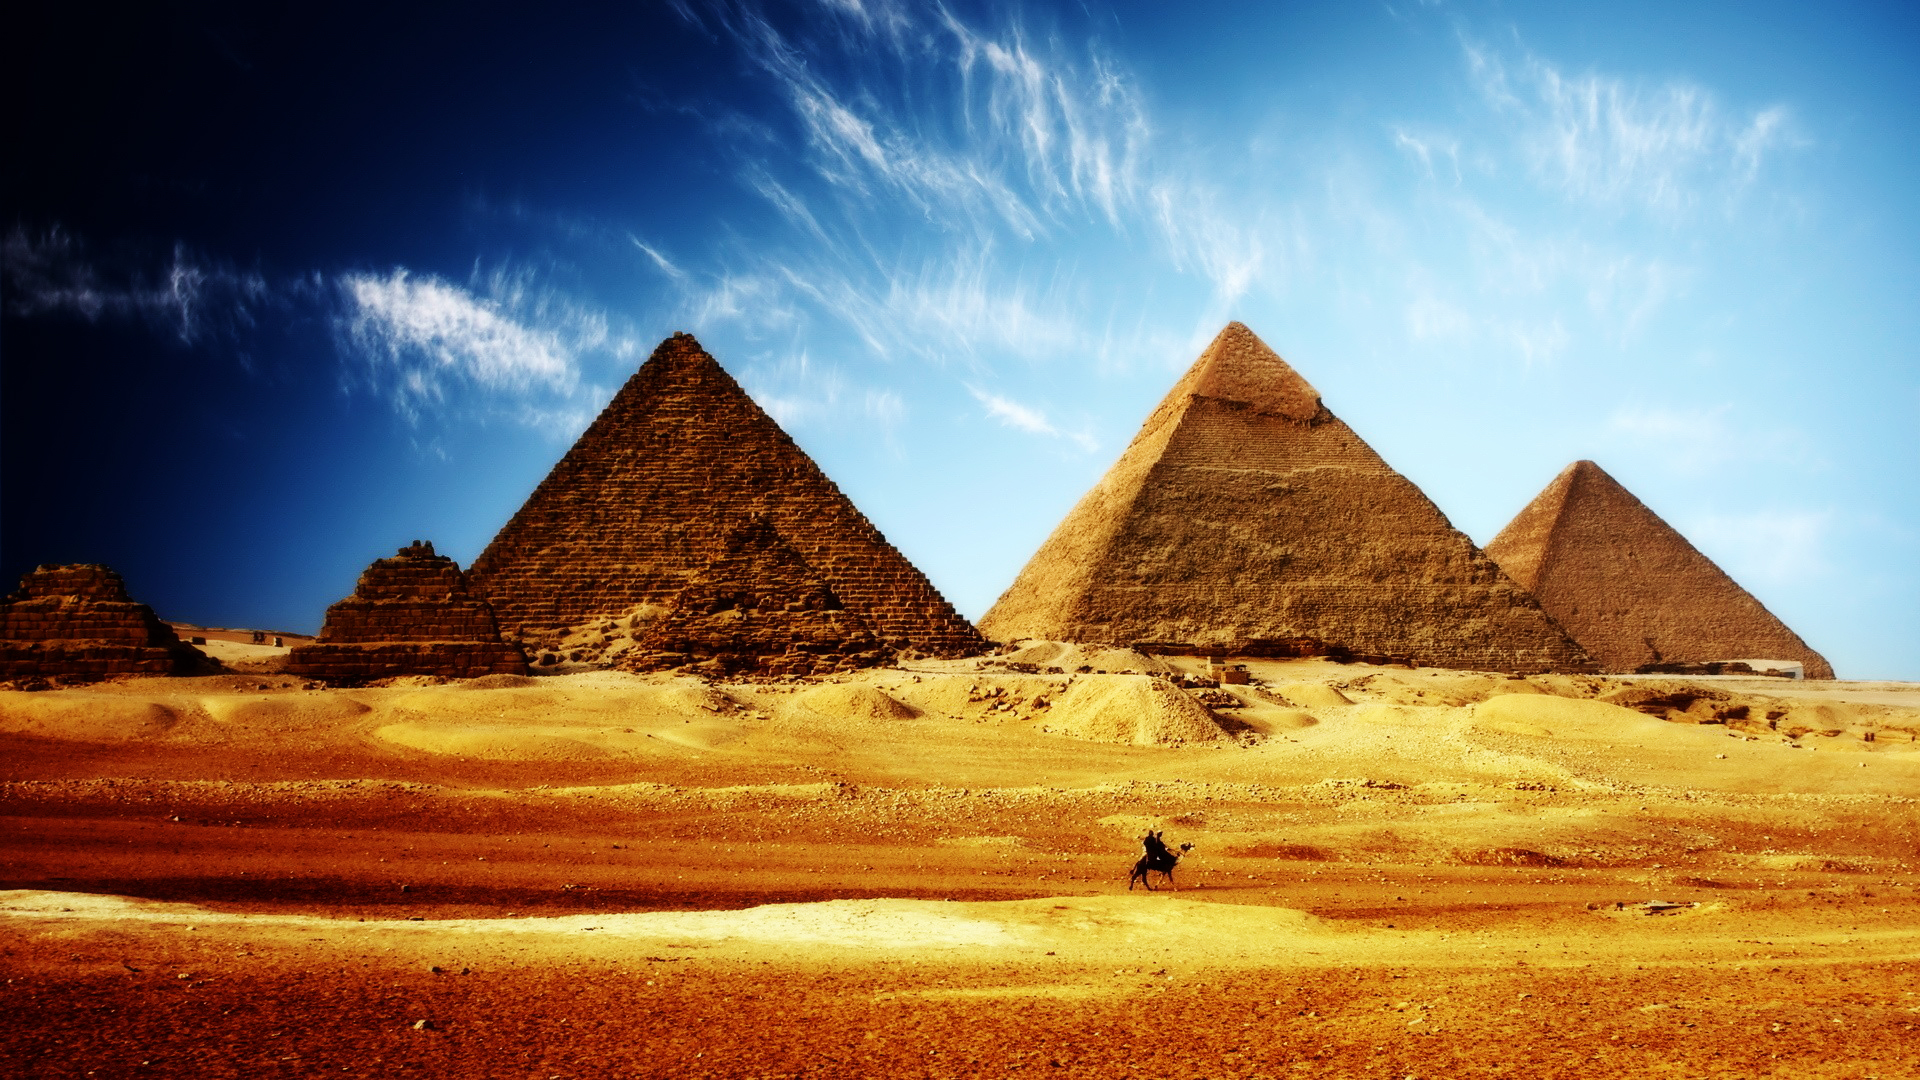 Egypt Pyramids HDR wallpaper 1920x1080